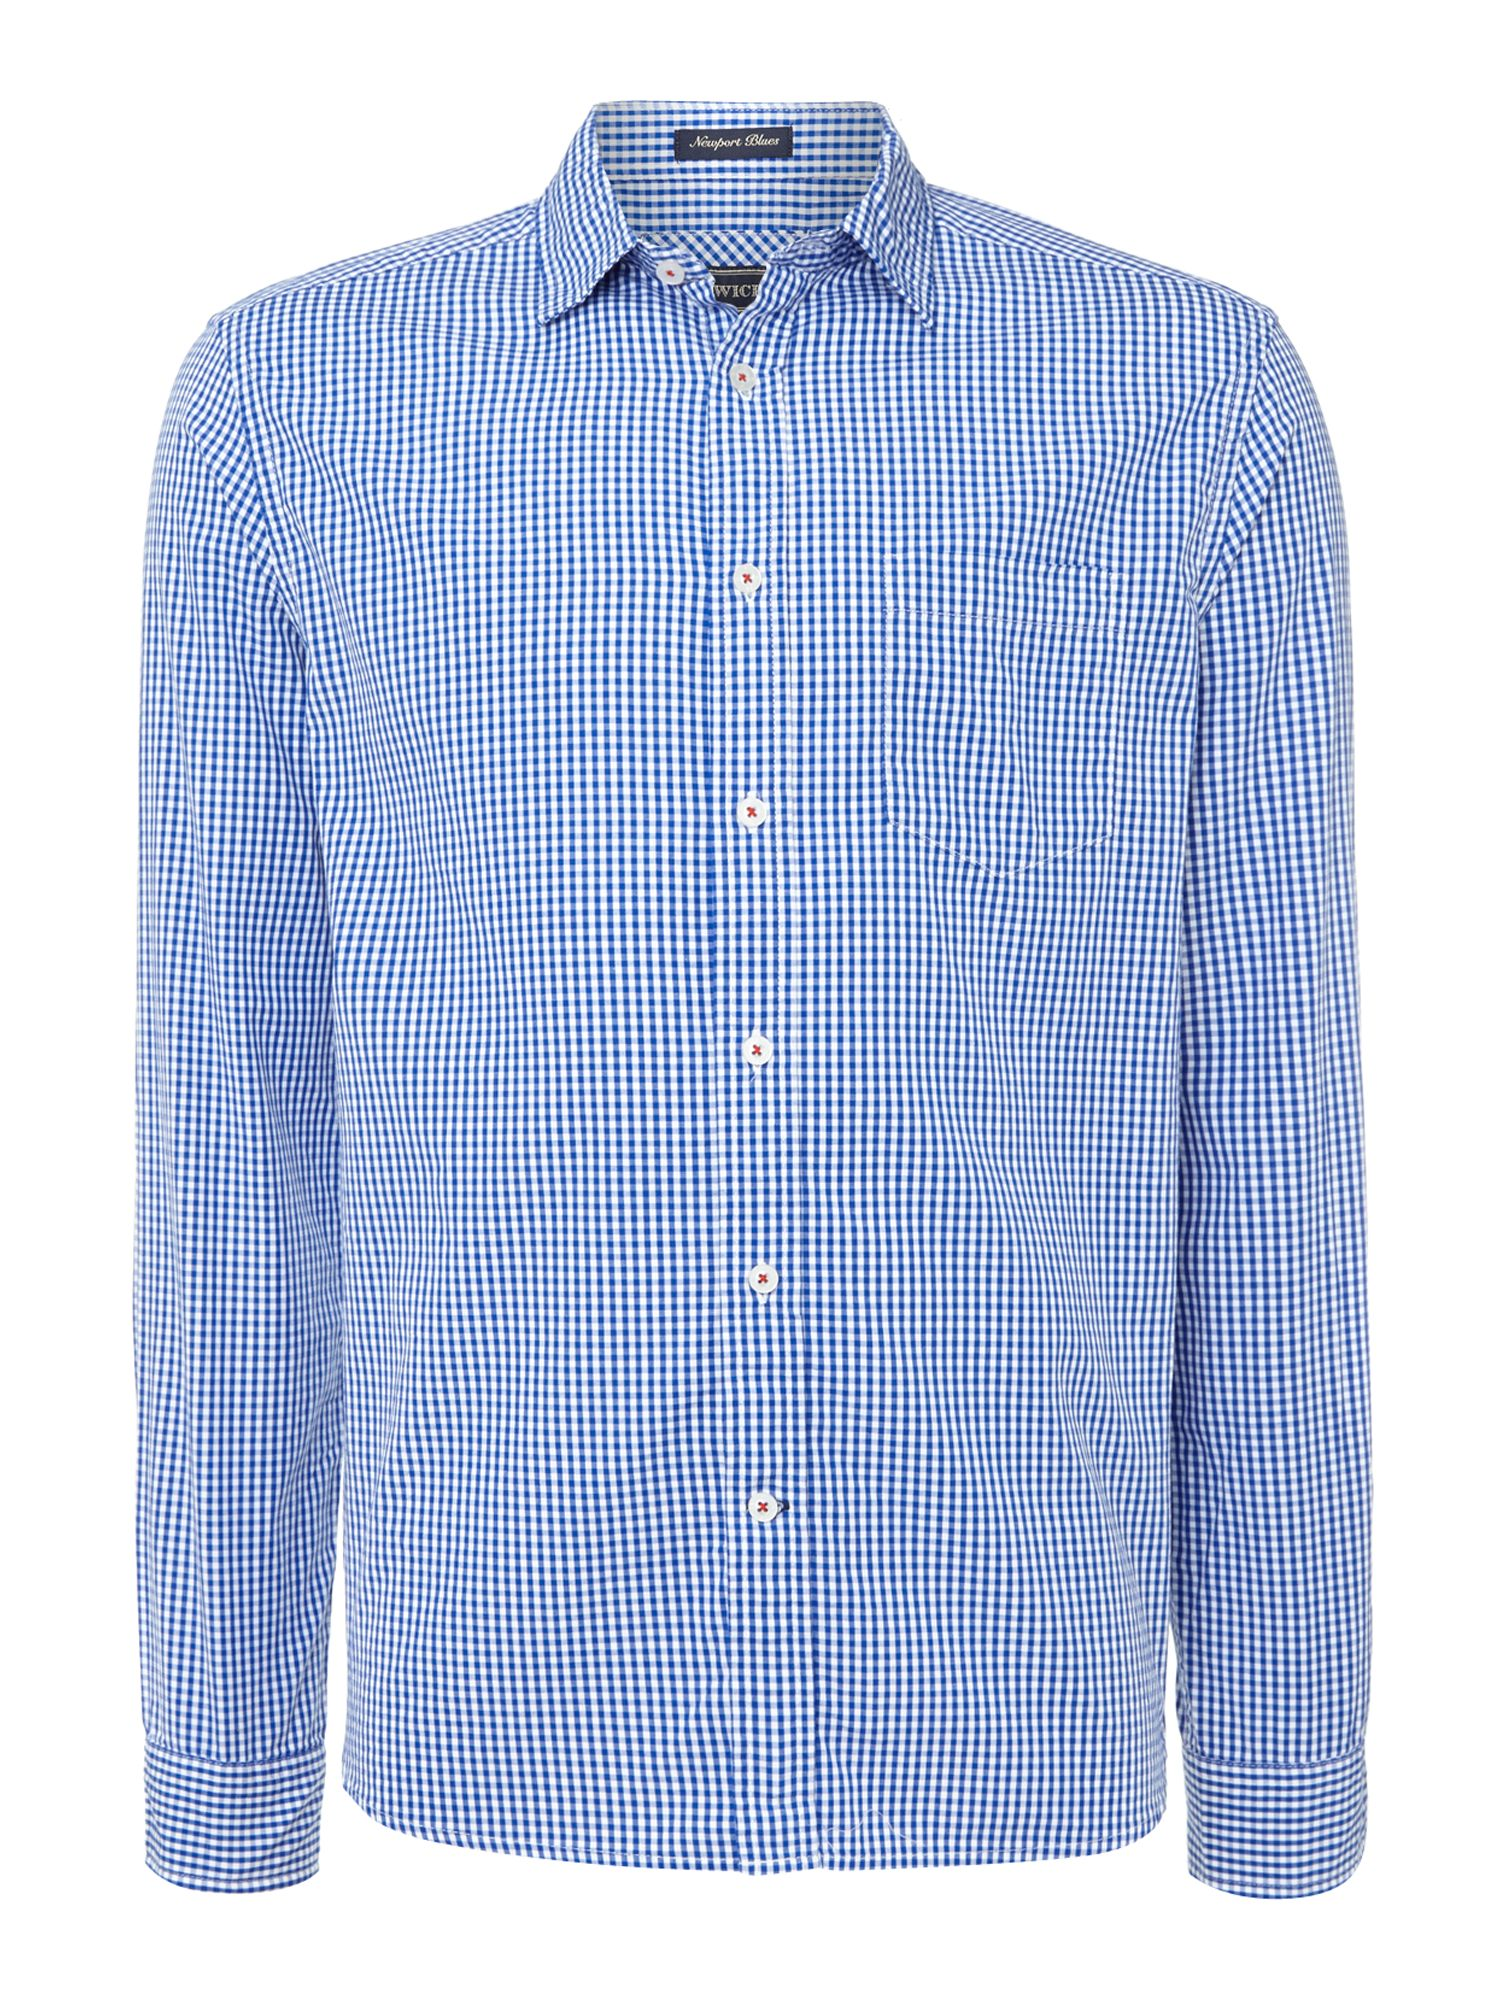 Grafton Gingham Shirt